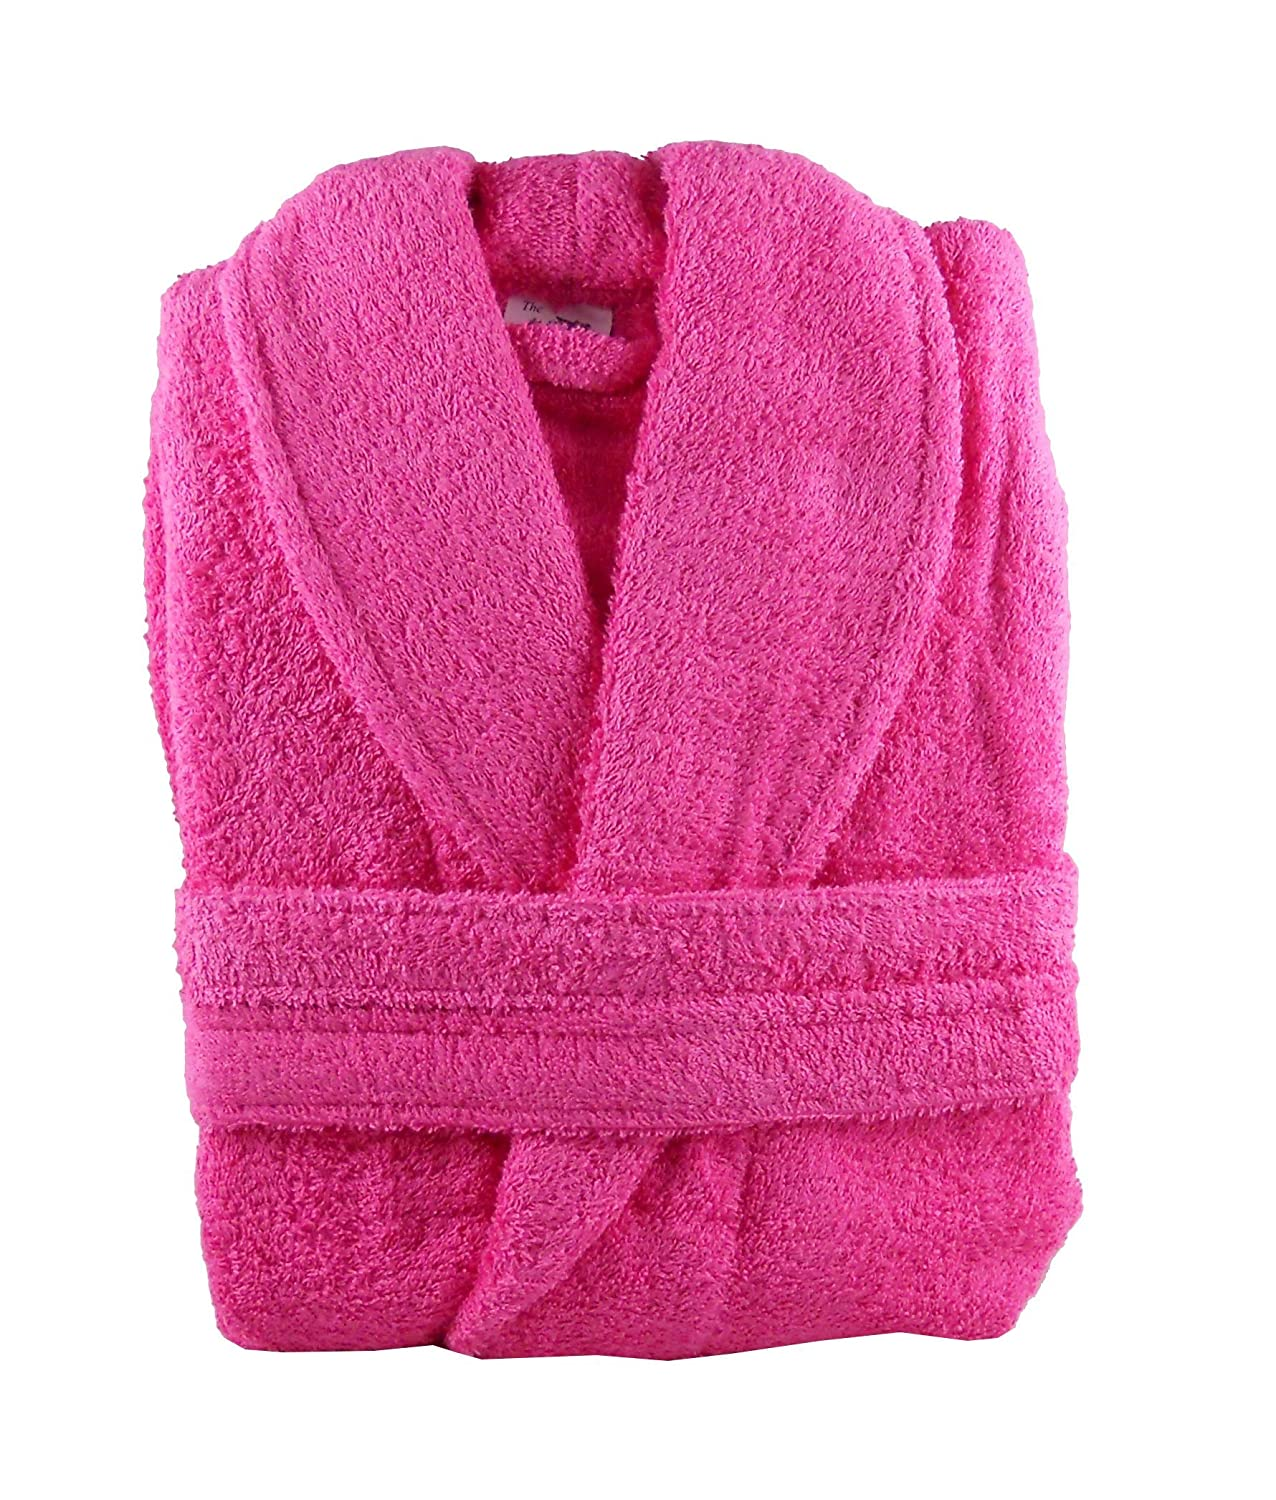 The House Of Emily Huge Massive 100% Cotton Terry Towelling Bathrobe + Matching  Belt - XXXL Chest Size 67